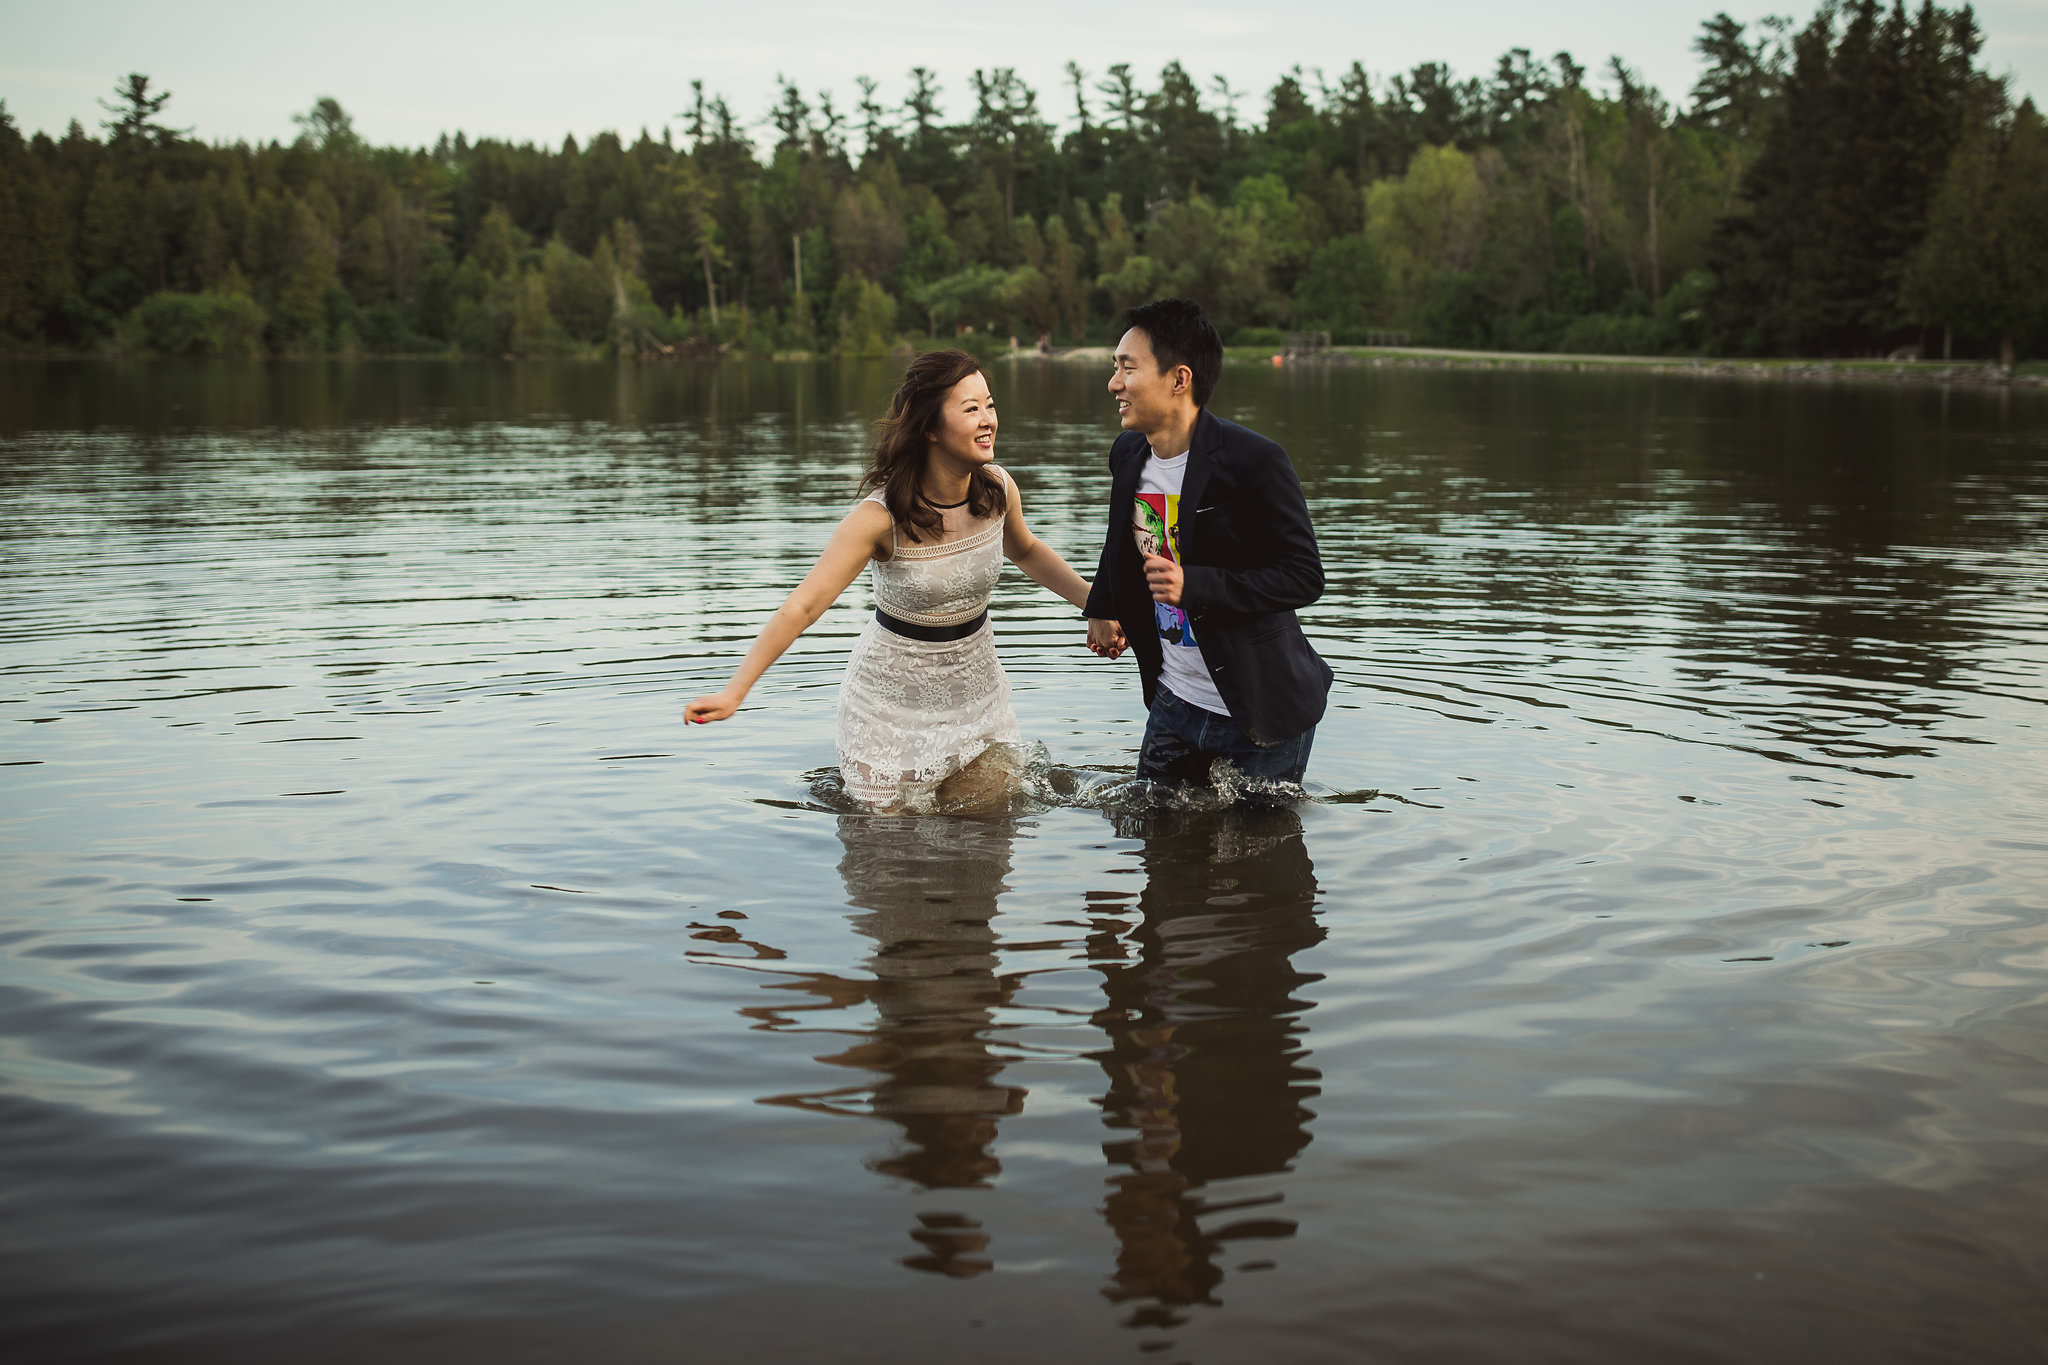 Shirley Michael Rockwood Conservation EngagementPhotos 42 - Rockwood Conservation Area Engagement Photos